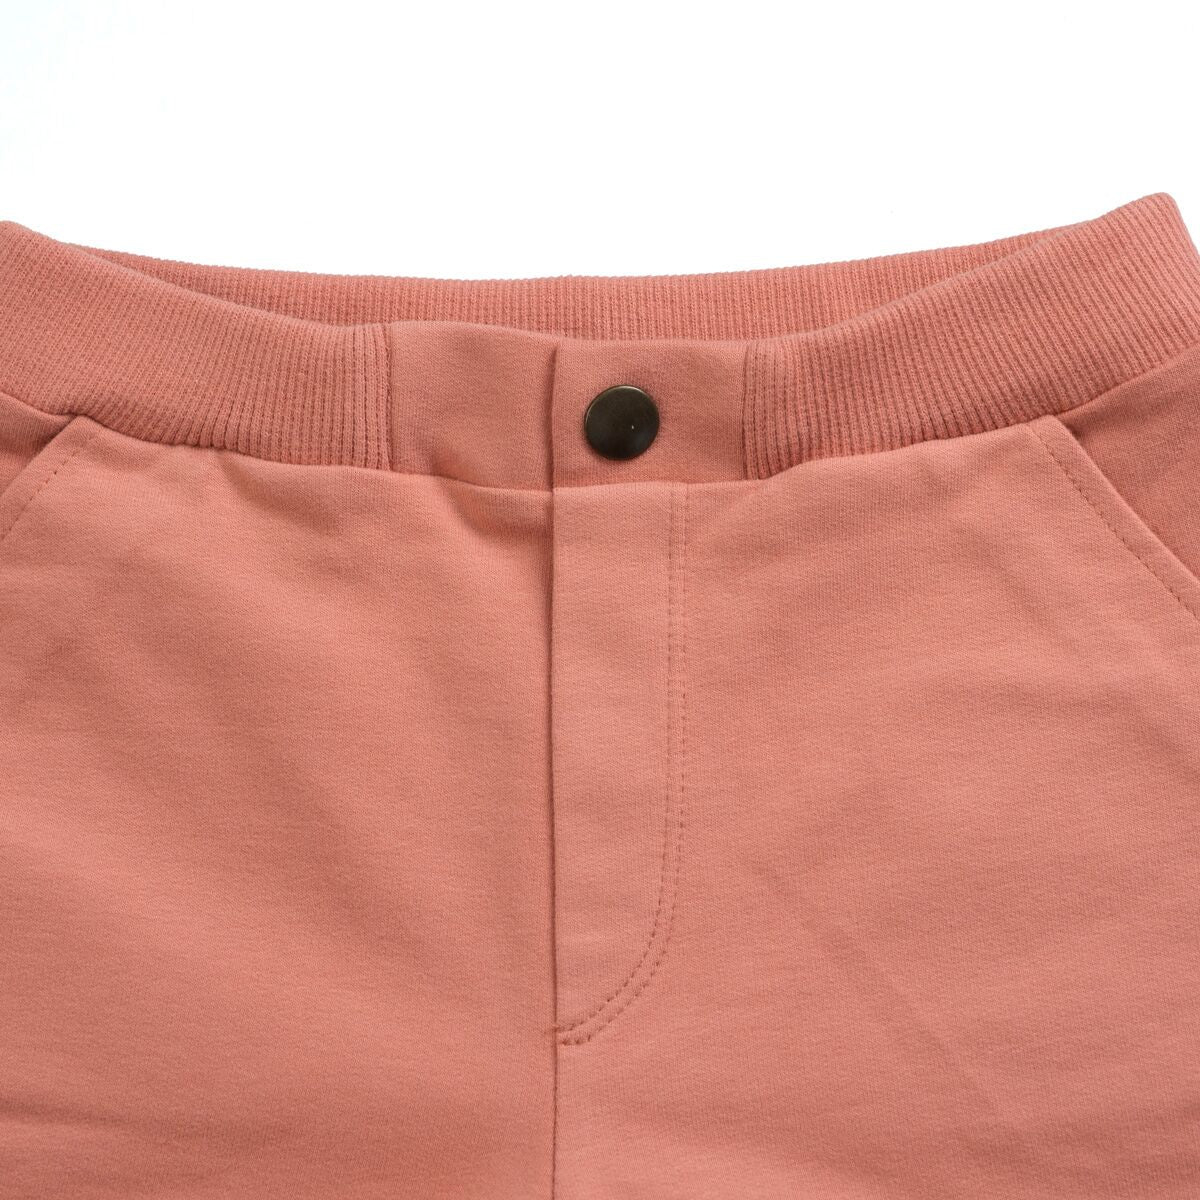 Designer Kids Fashion at Bloom Moda Online Children's Boutique - Little Hedonist Billy Shorts - Desert Sand,  Shorts